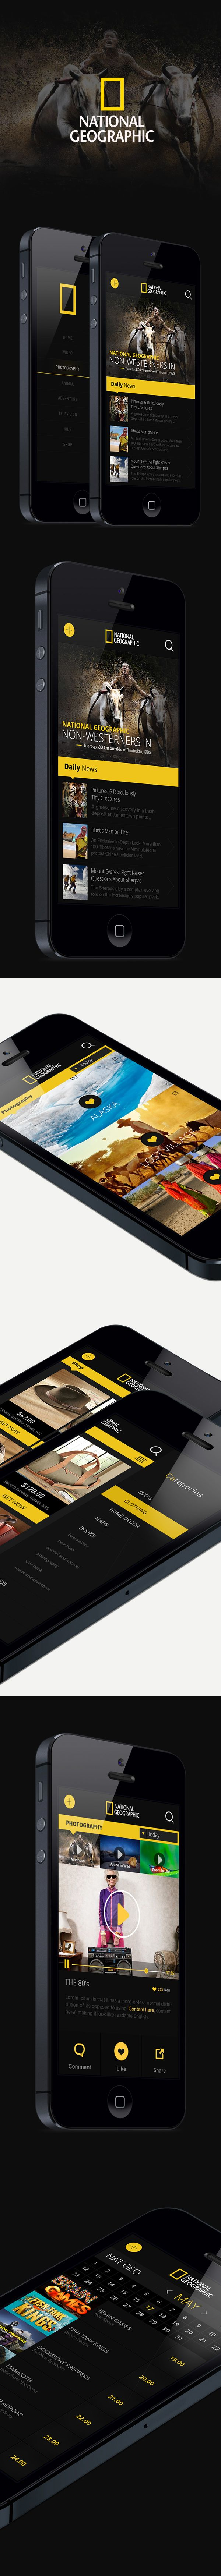 I have done a concept design for National Geographic iPhone App. I adopted Flat Design Approach as much as it can be, by using yellow and black colour tones mainly and with powerful visuality.